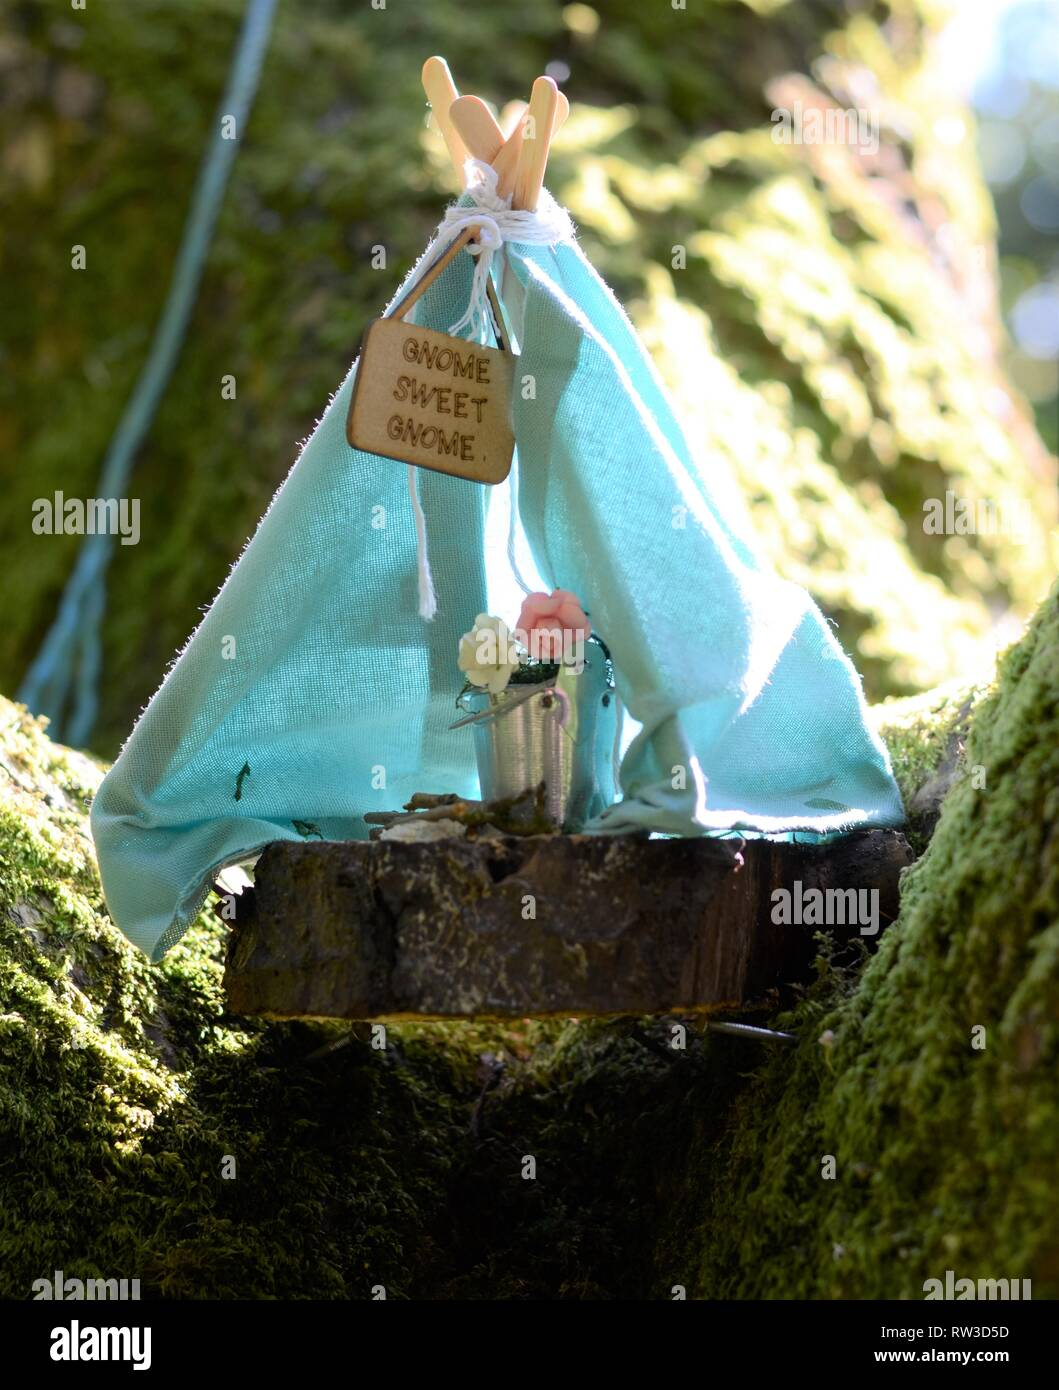 Fairy house Gnome sweet gnome - Stock Image & Fairy Tent Stock Photos u0026 Fairy Tent Stock Images - Alamy